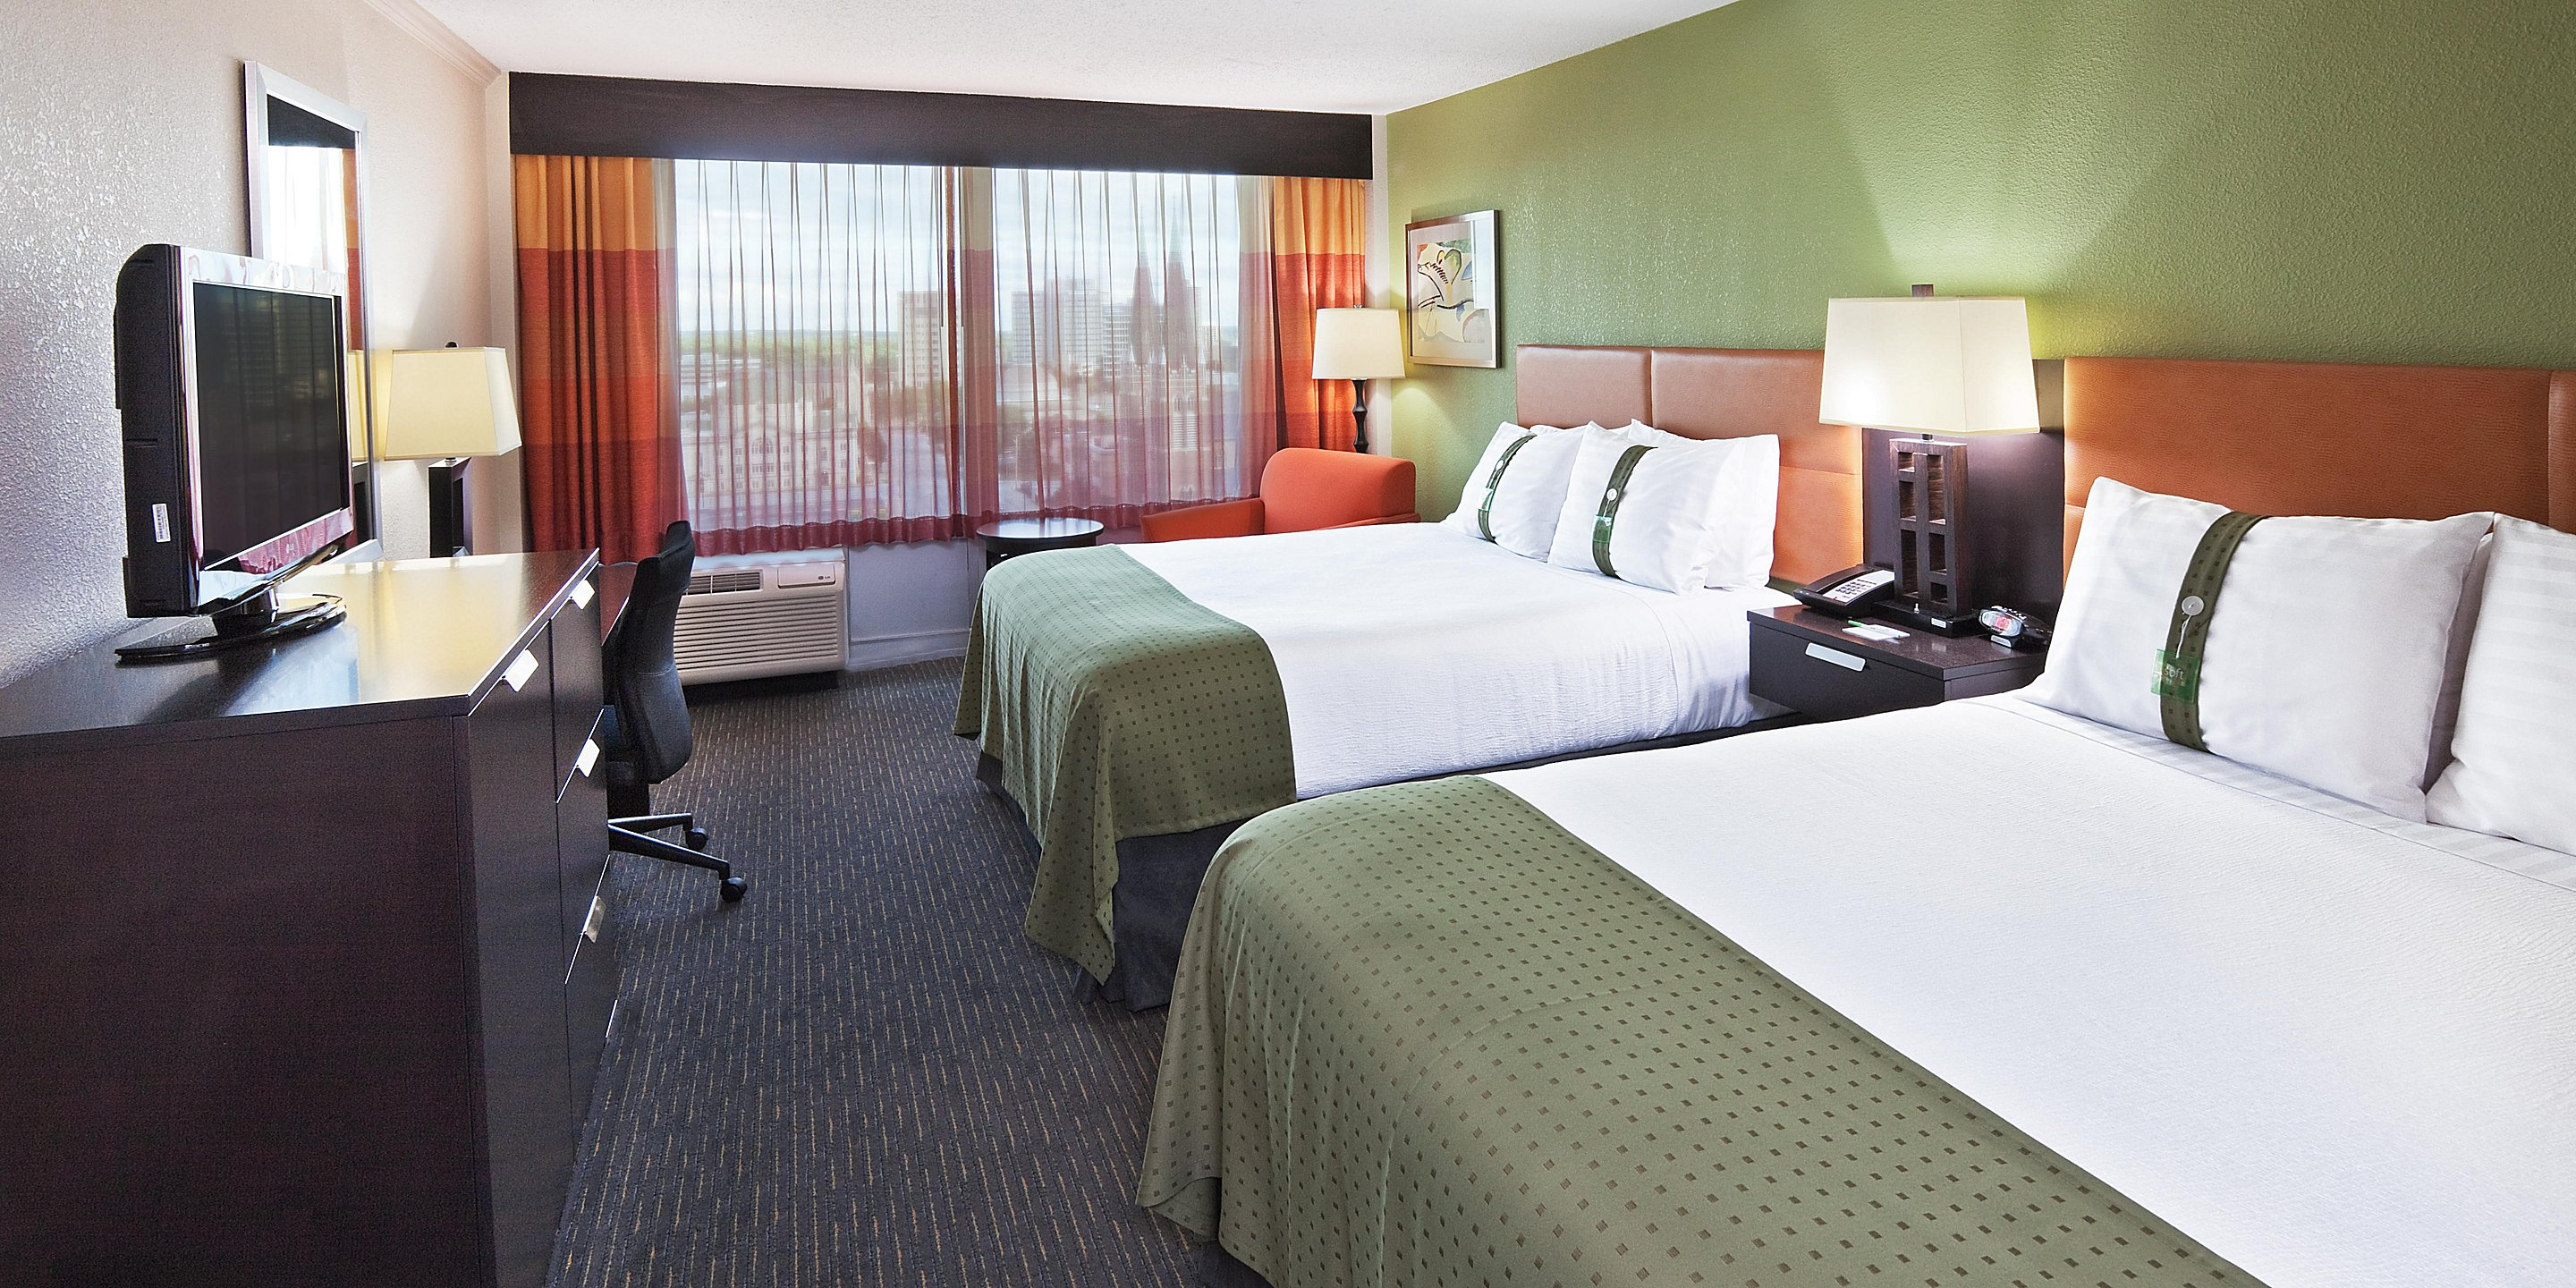 https://www.hotelsbyday.com/_data/default-hotel_image/3/17484/holiday-inn-tulsa-2533396511-2x1.jpeg